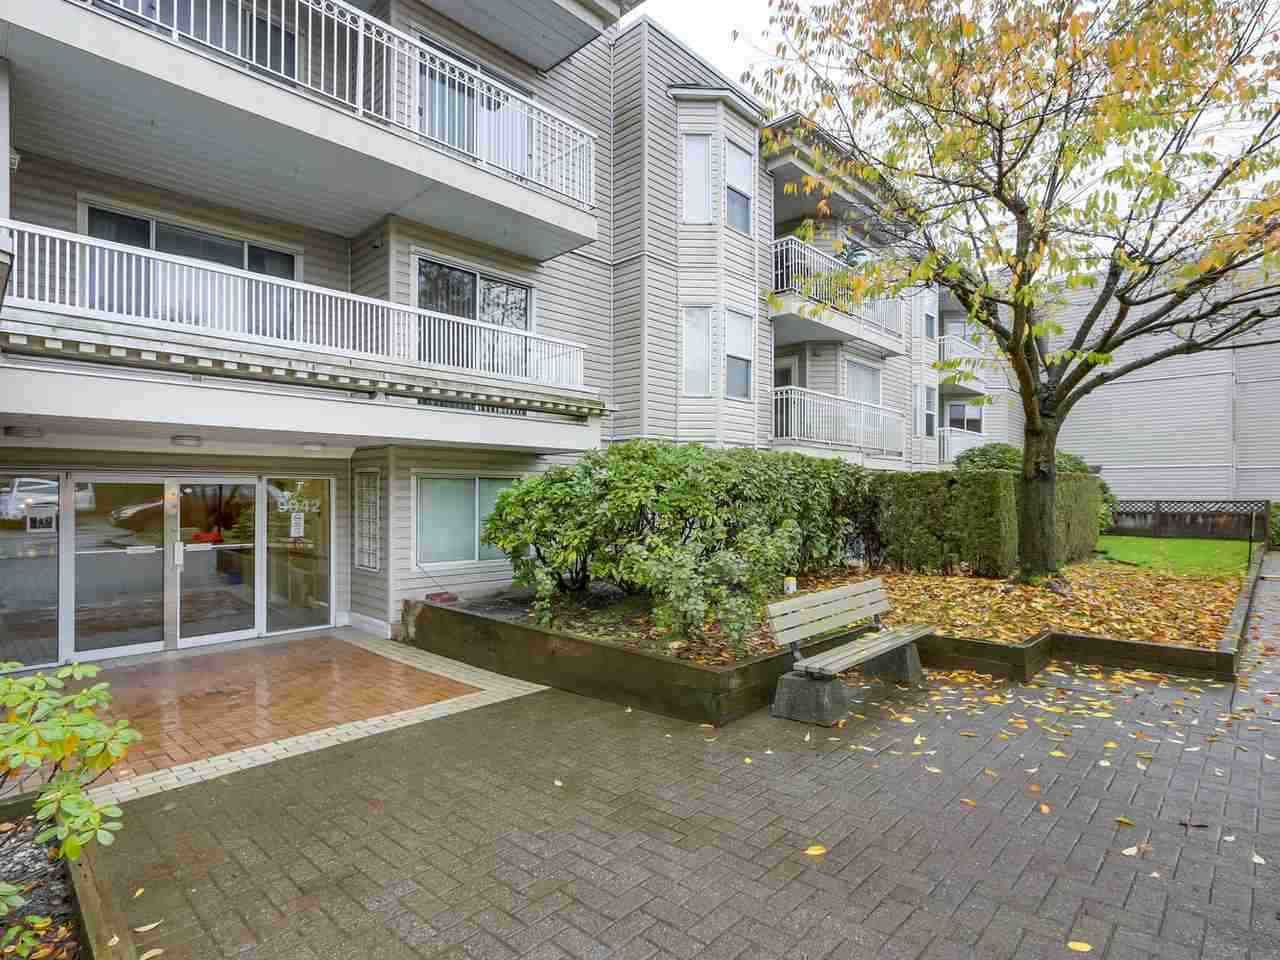 Main Photo: 205 9942 151 STREET in Surrey: Guildford Condo for sale (North Surrey)  : MLS®# R2337611